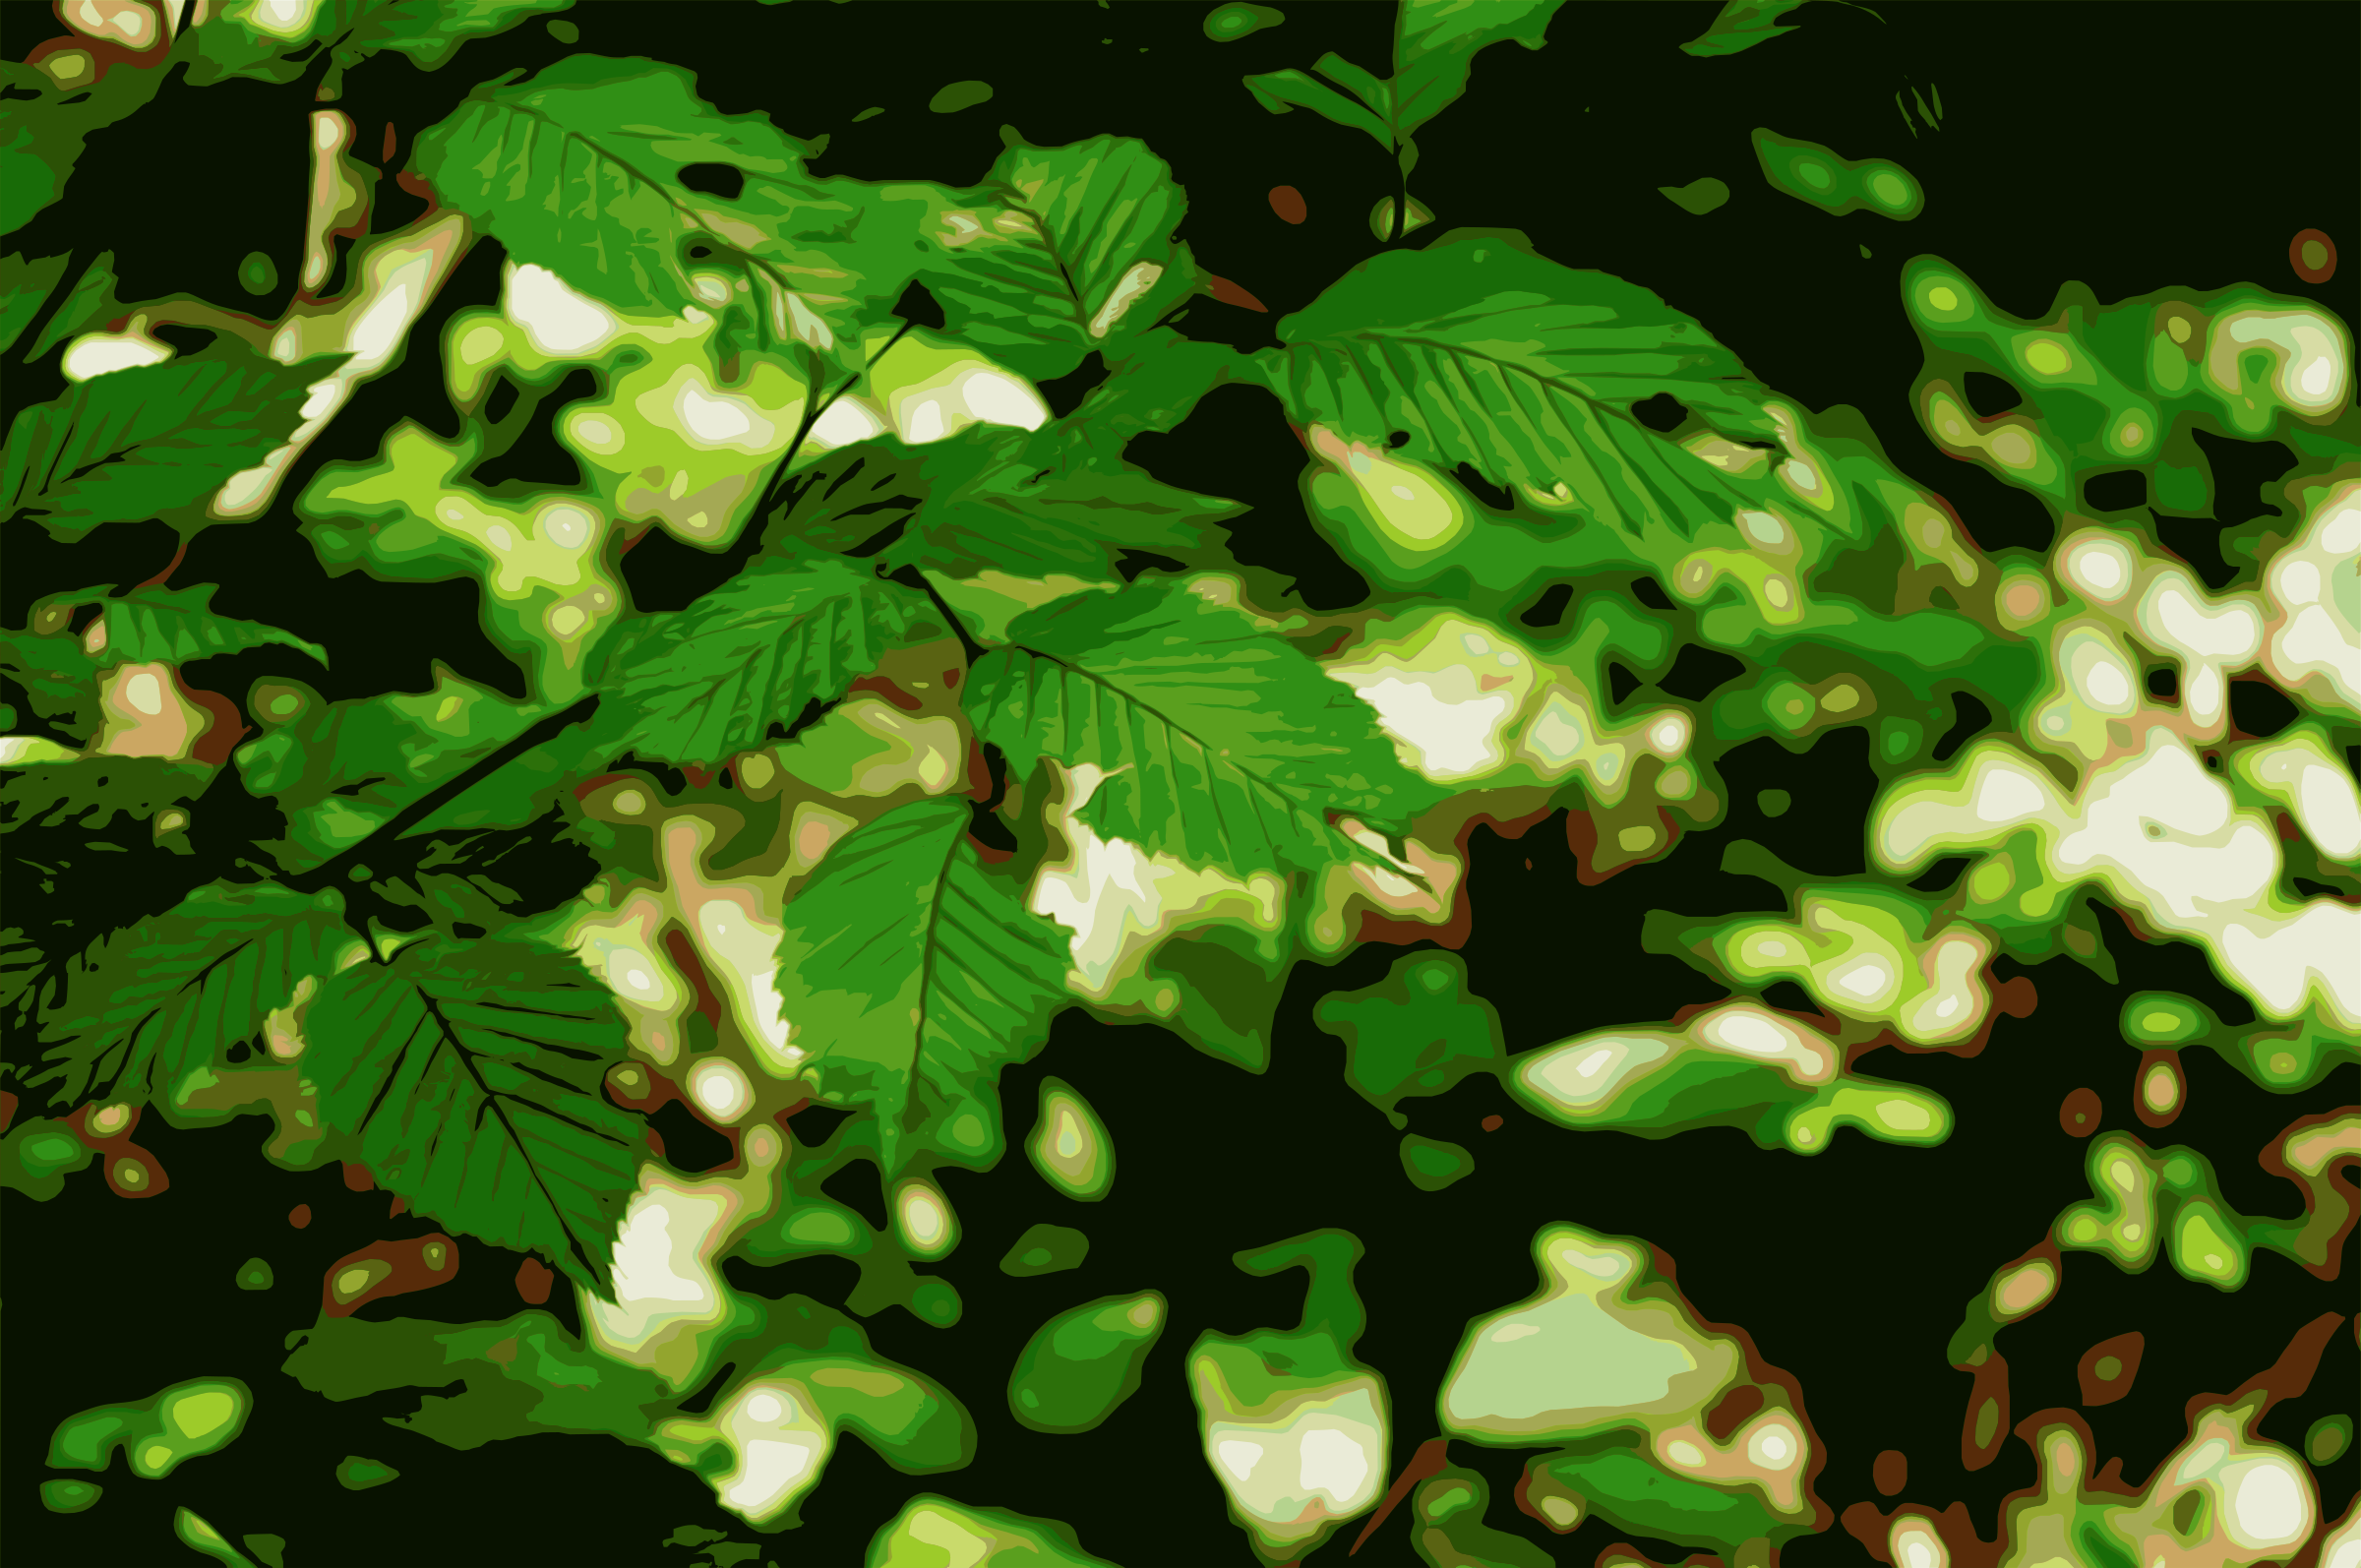 Vectorized leaves by photofree.ga